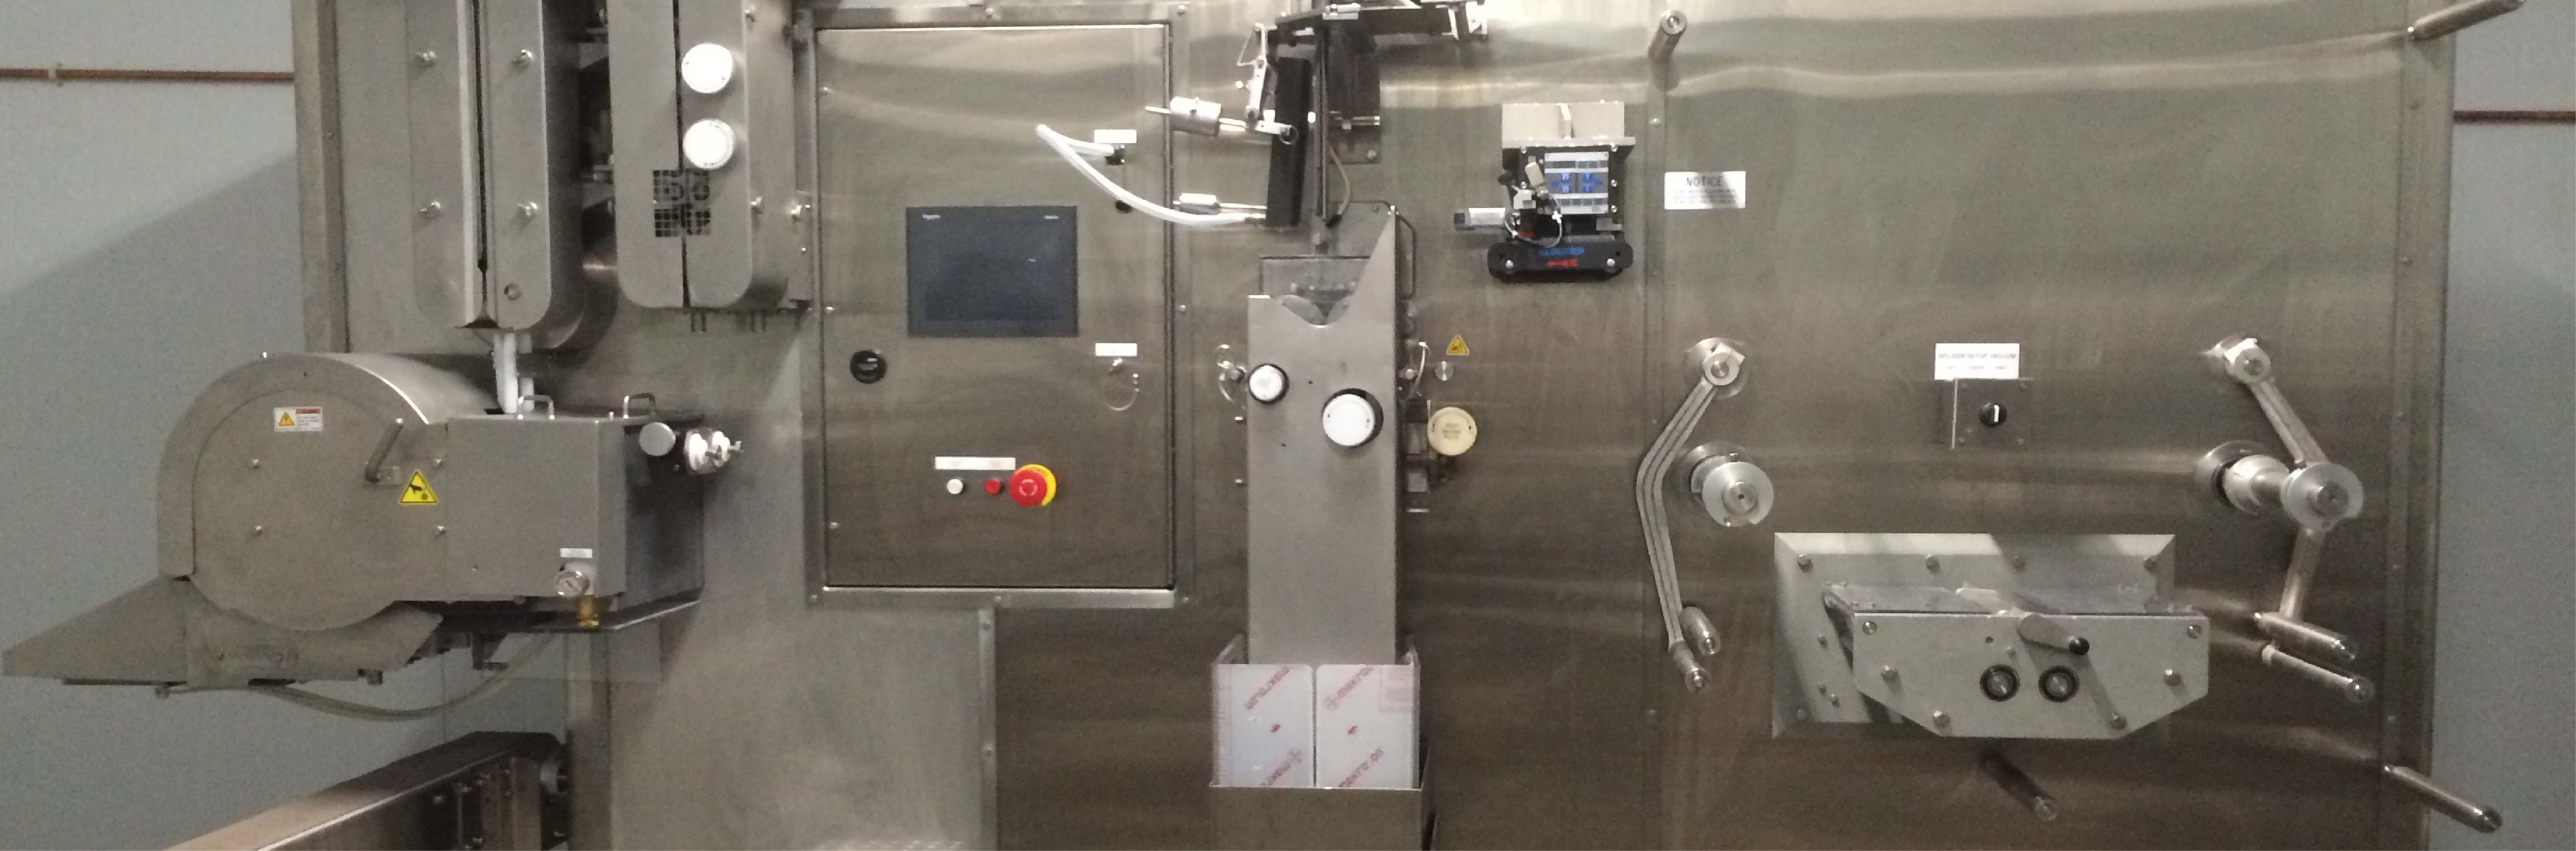 refurbished food manufacturing equipment